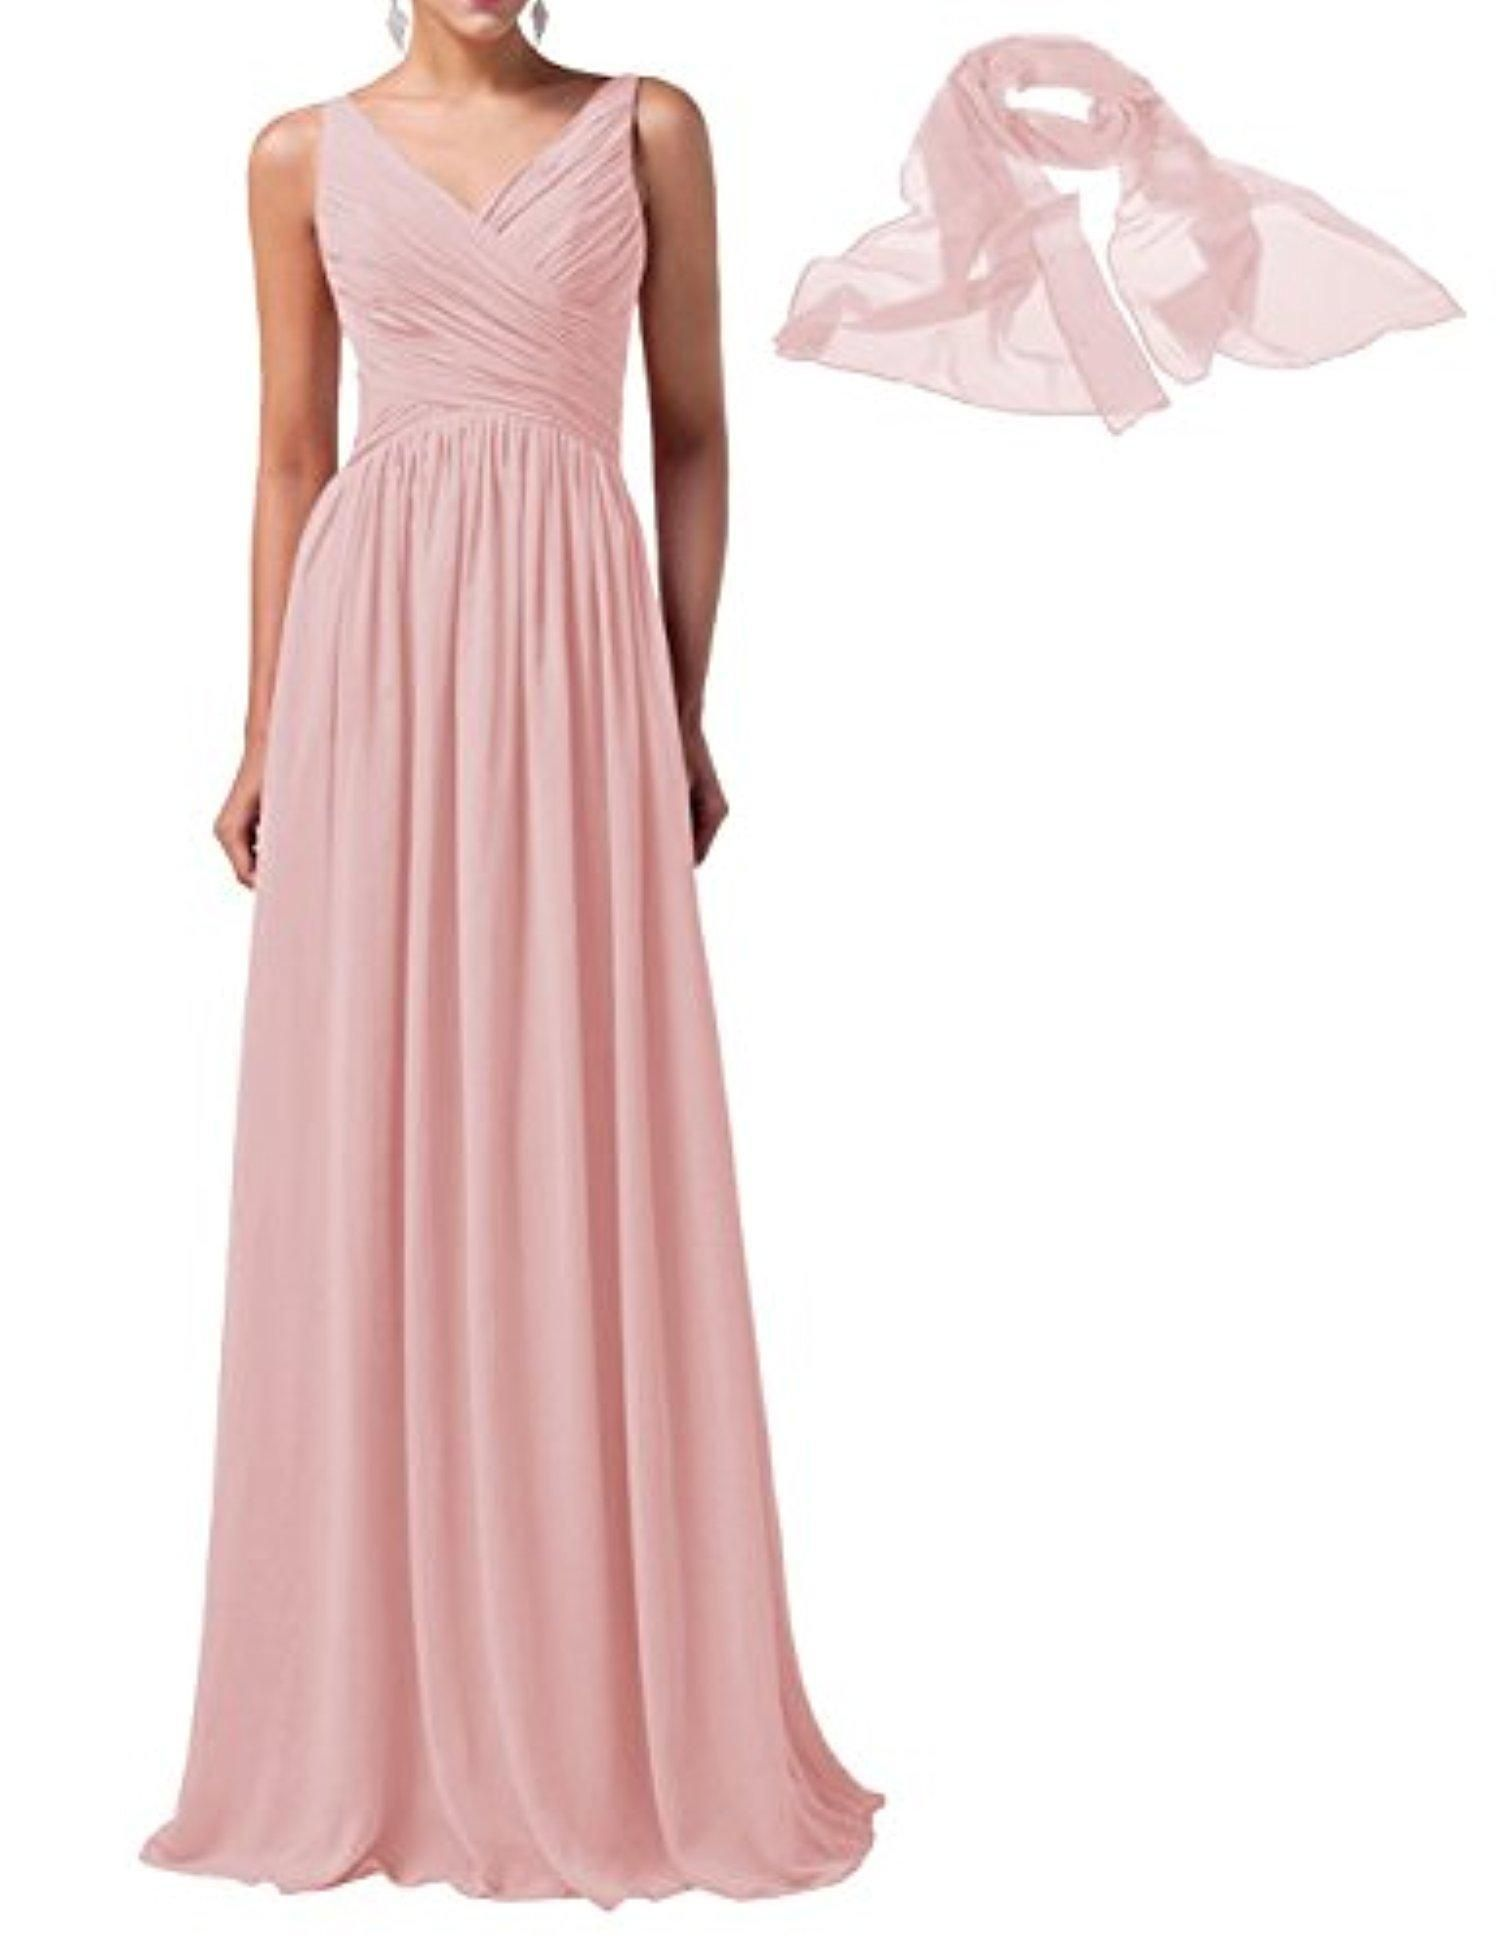 Tideclothes long chiffon bridesmaid dress vneck prom dress evening